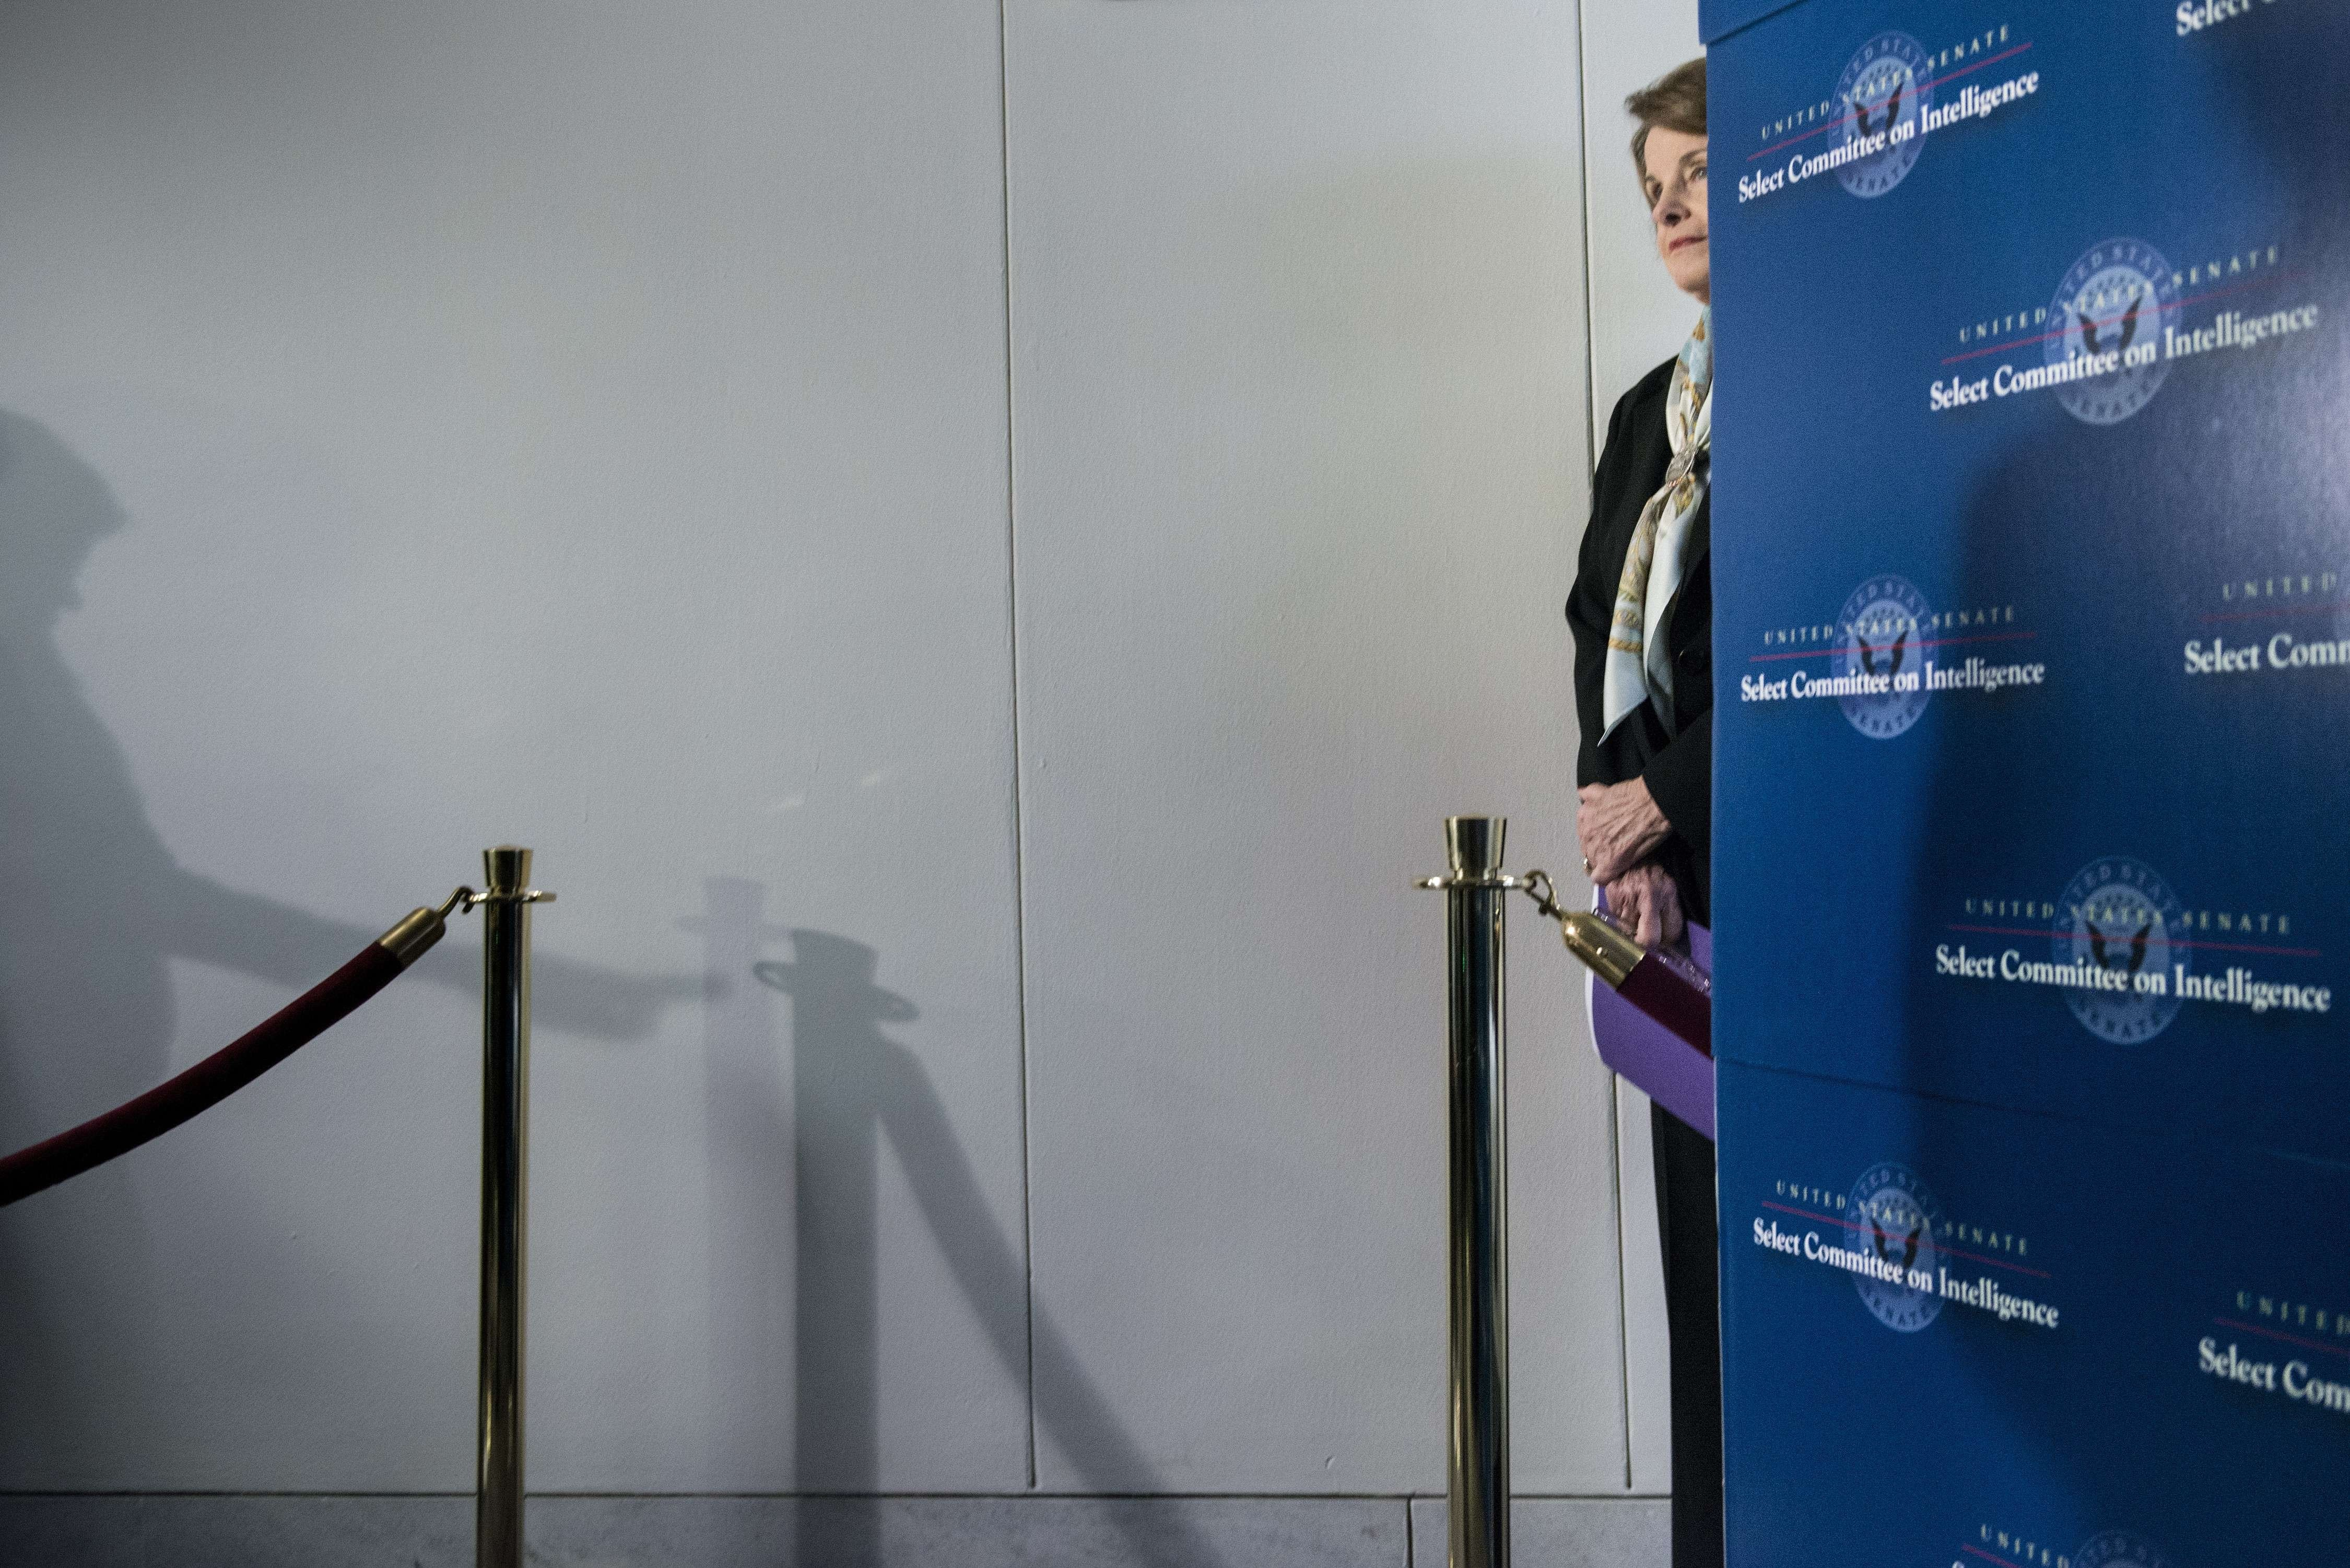 California Senator Dianne Feinstein waits to speak to the media after a closed meeting of the Senate Intelligence Committee on Capitol Hill in Washington on April 3, 2014